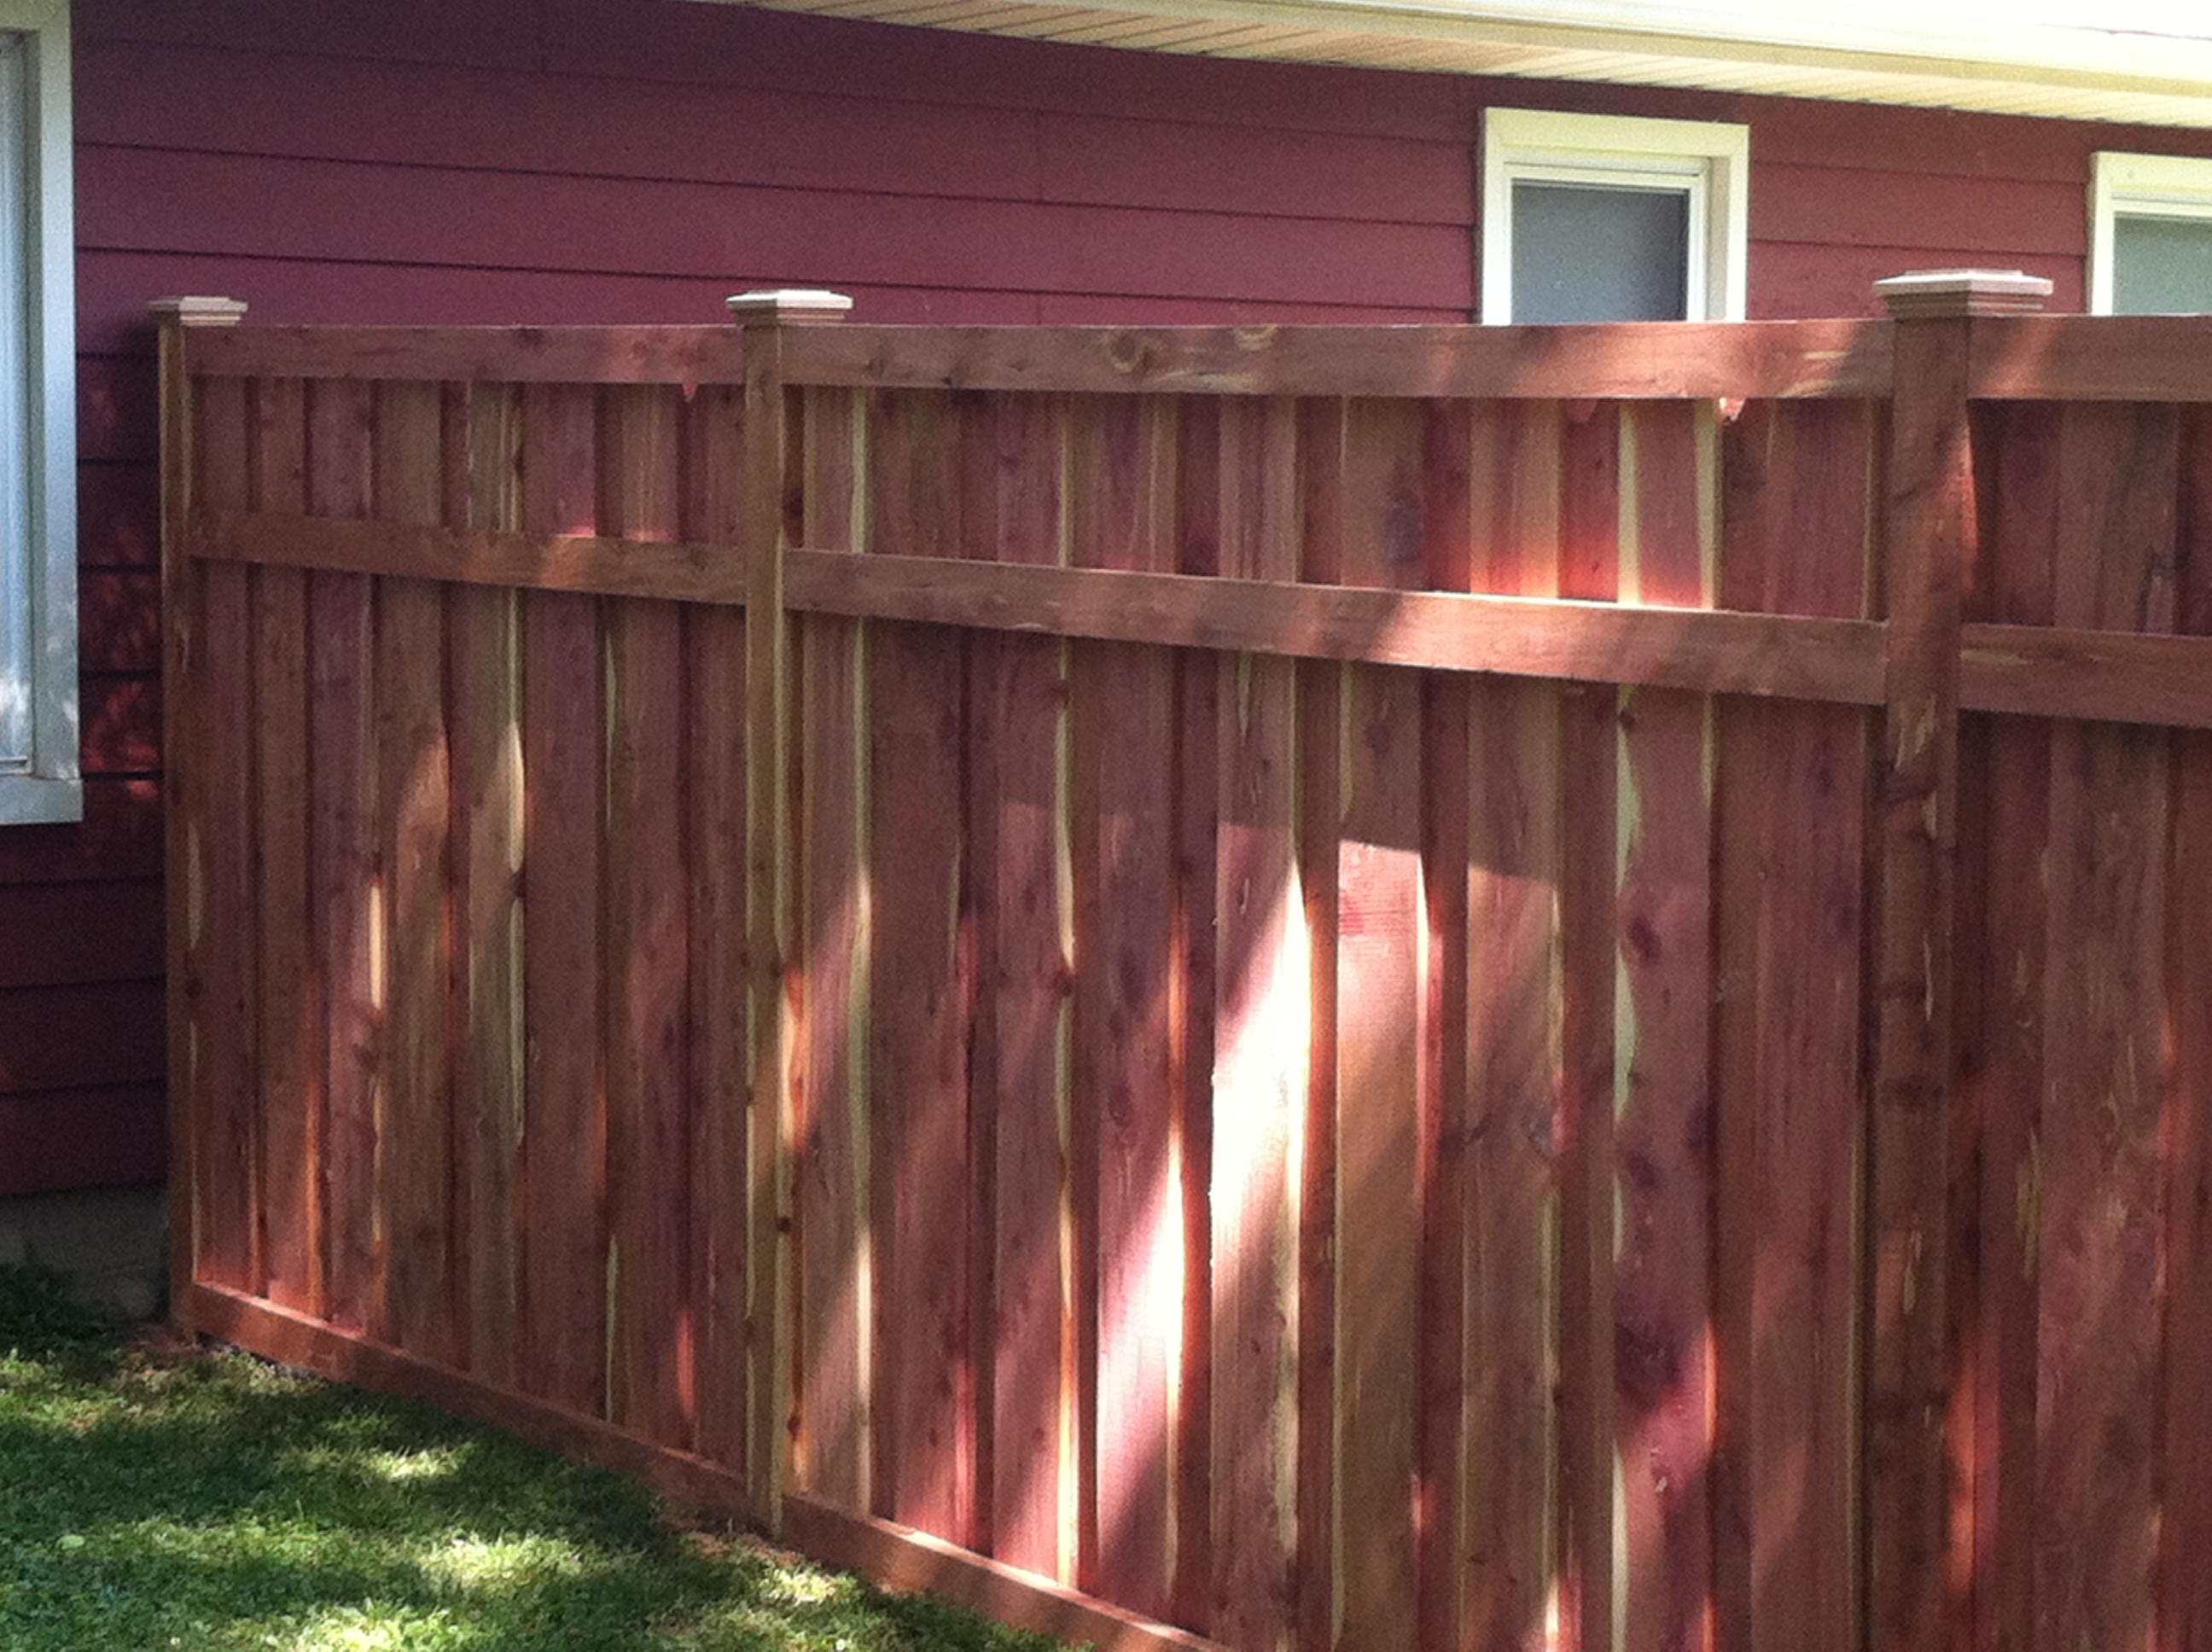 Allstar fence portfolio 6ft 3 rail eastern red cedar wood privacy fence baanklon Gallery